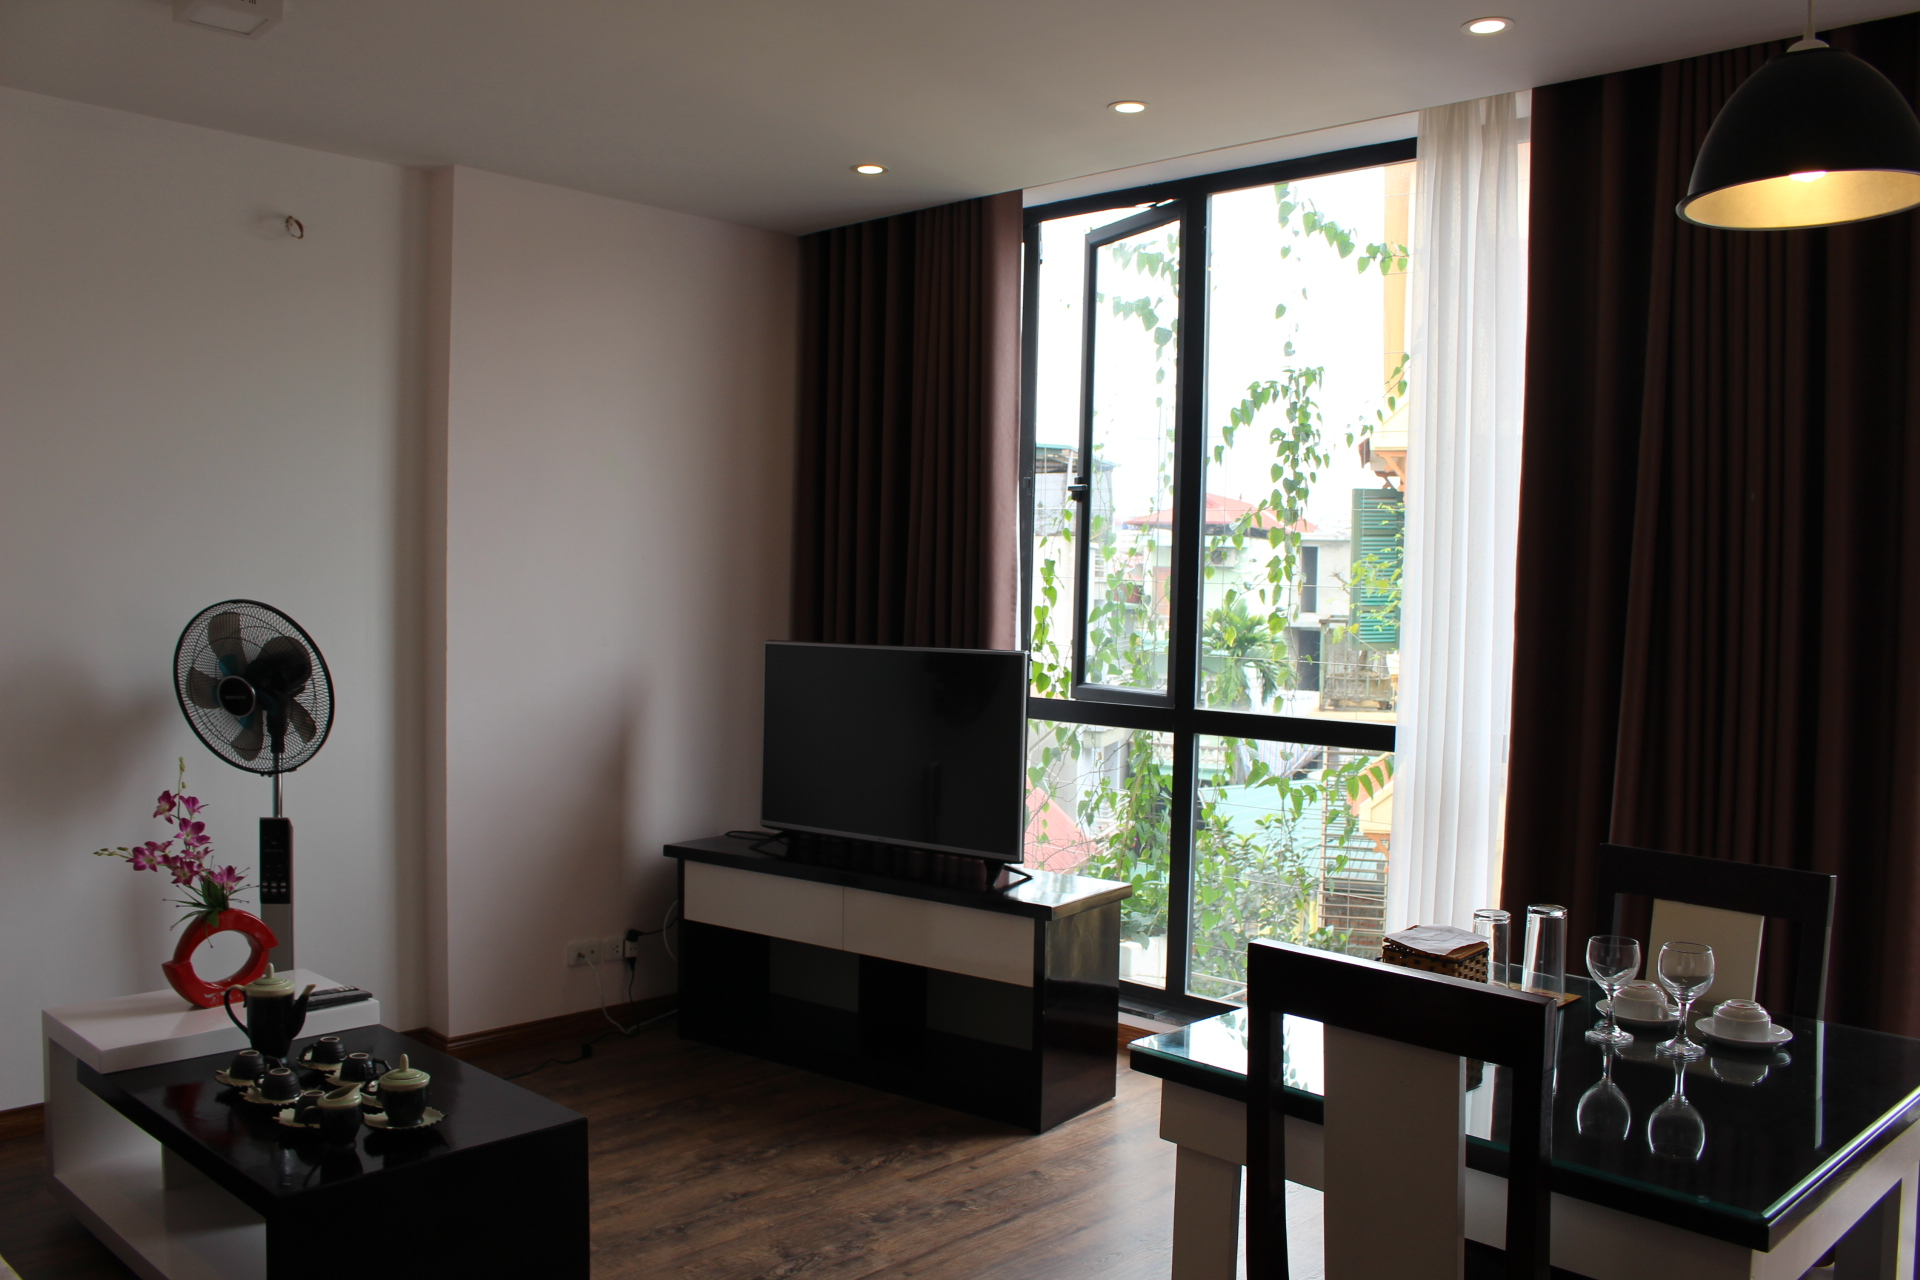 New Serviced Apartment in Dao Tan,Ba Dinh for Rent